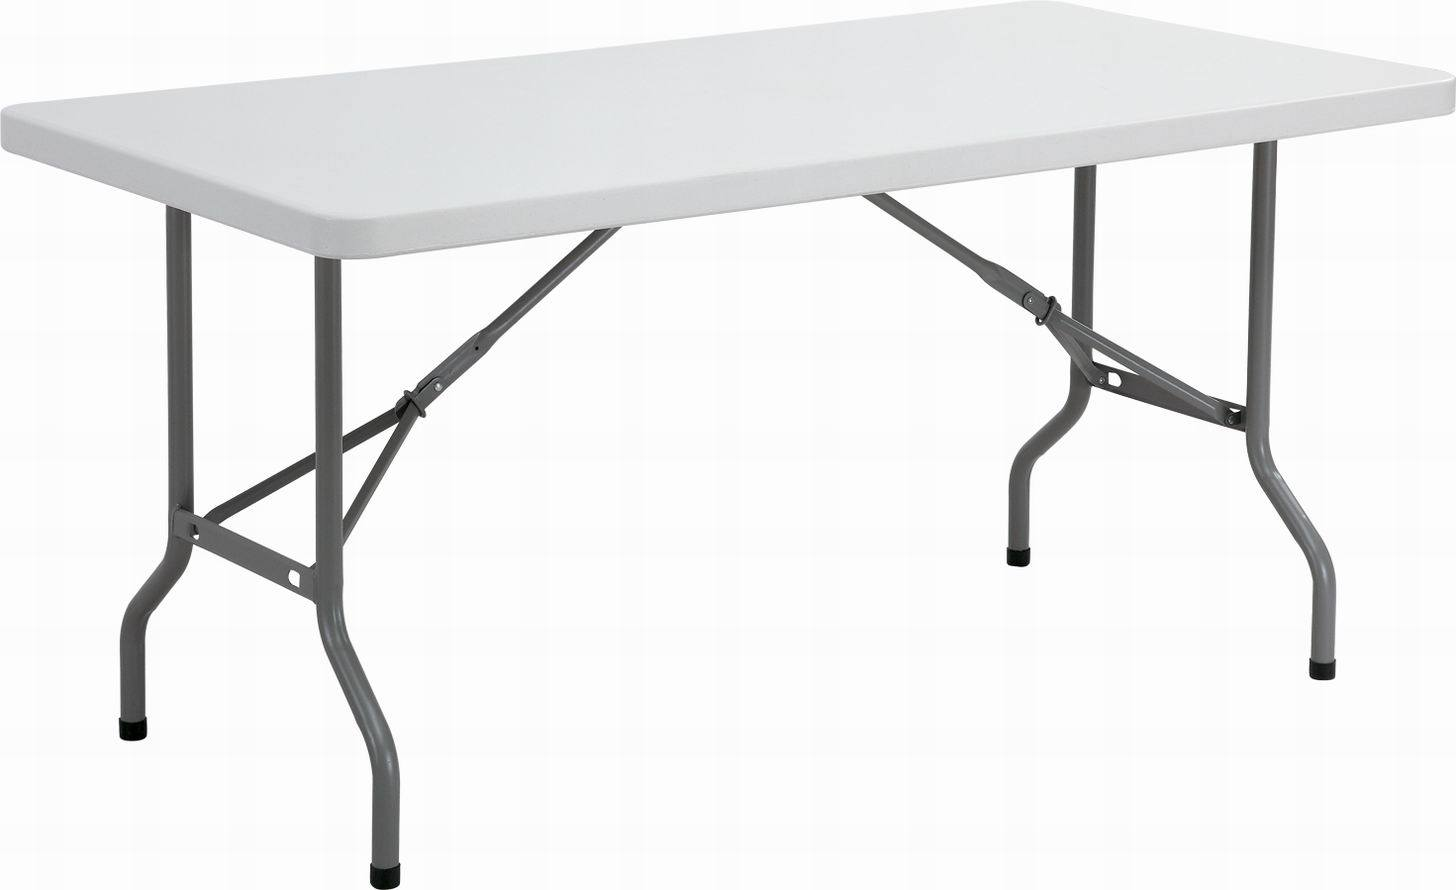 Built In Folding Table China Folding Table Rb 3060 China Folding Table